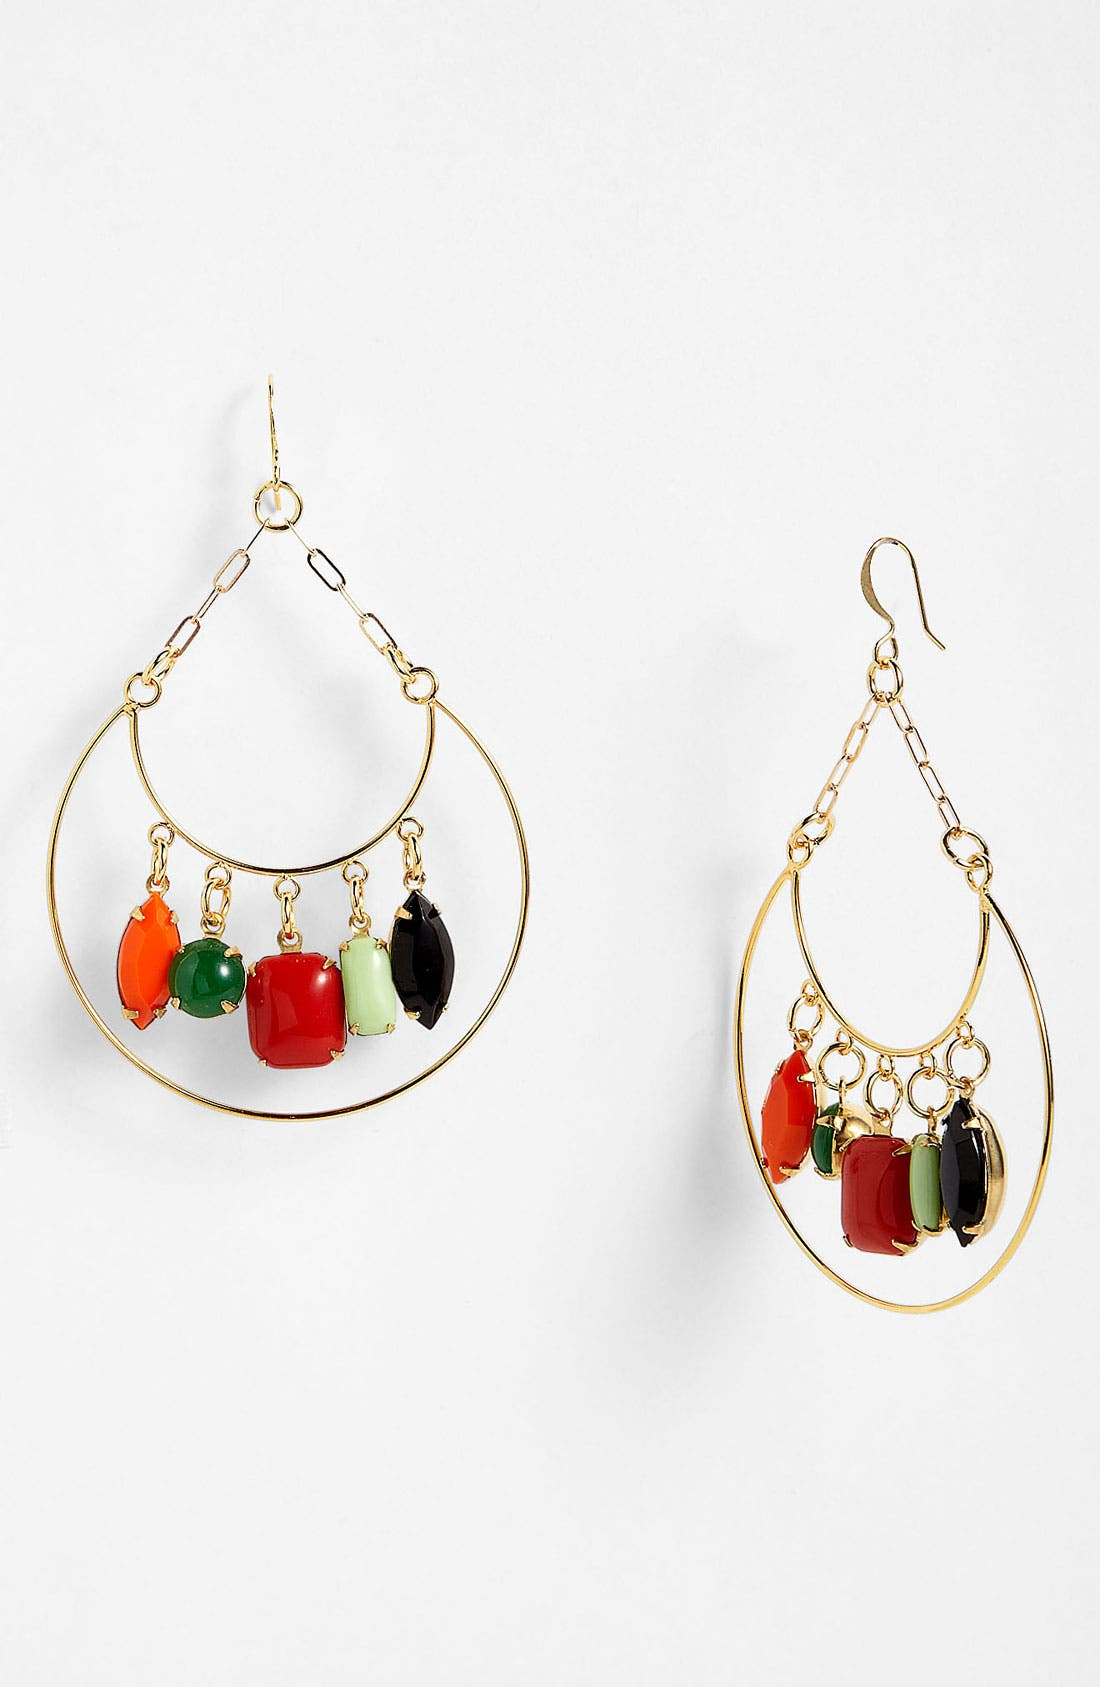 Alternate Image 1 Selected - Verdier Jewelry 'Multi Vintage Glass' Chandelier Earrings (Nordstrom Exclusive)